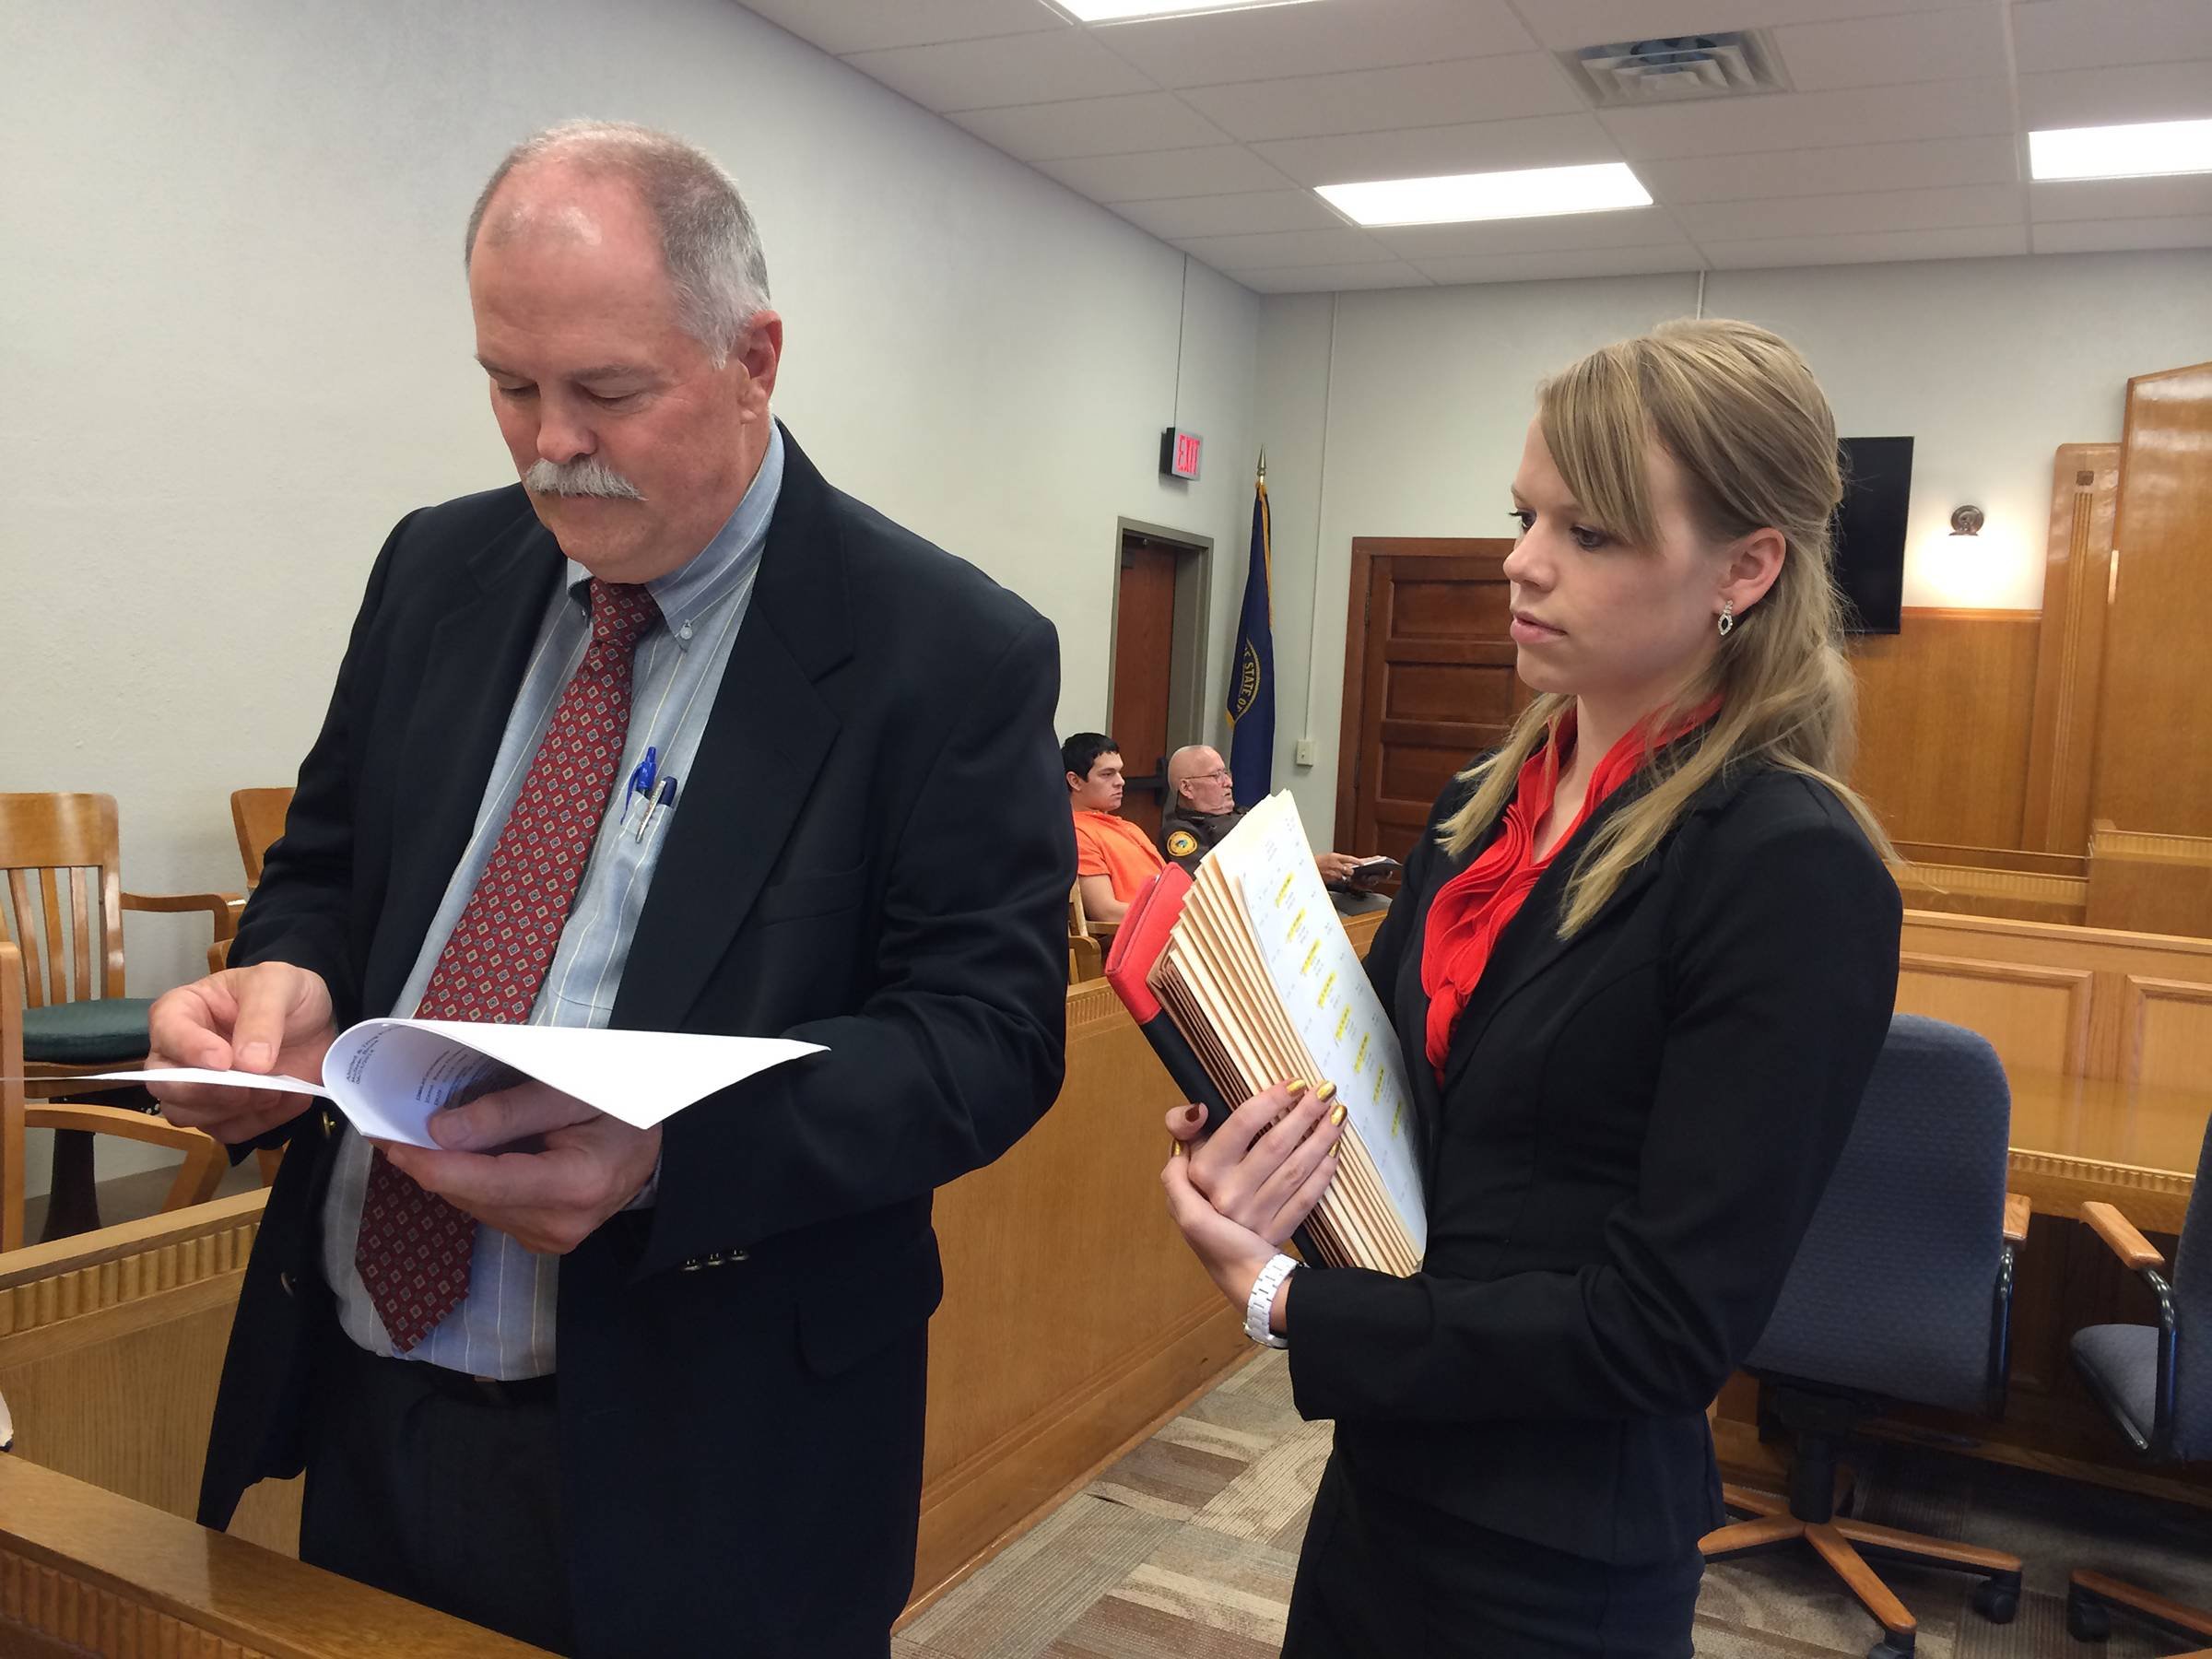 John Thomas, 61, an attorney in Center, Nebraska, teaches rural law lessons to his intern, Alissa Doerr. A second-year student at the Nebraska College of Law, she was Thomas' first law clerk applicant in 20 years.